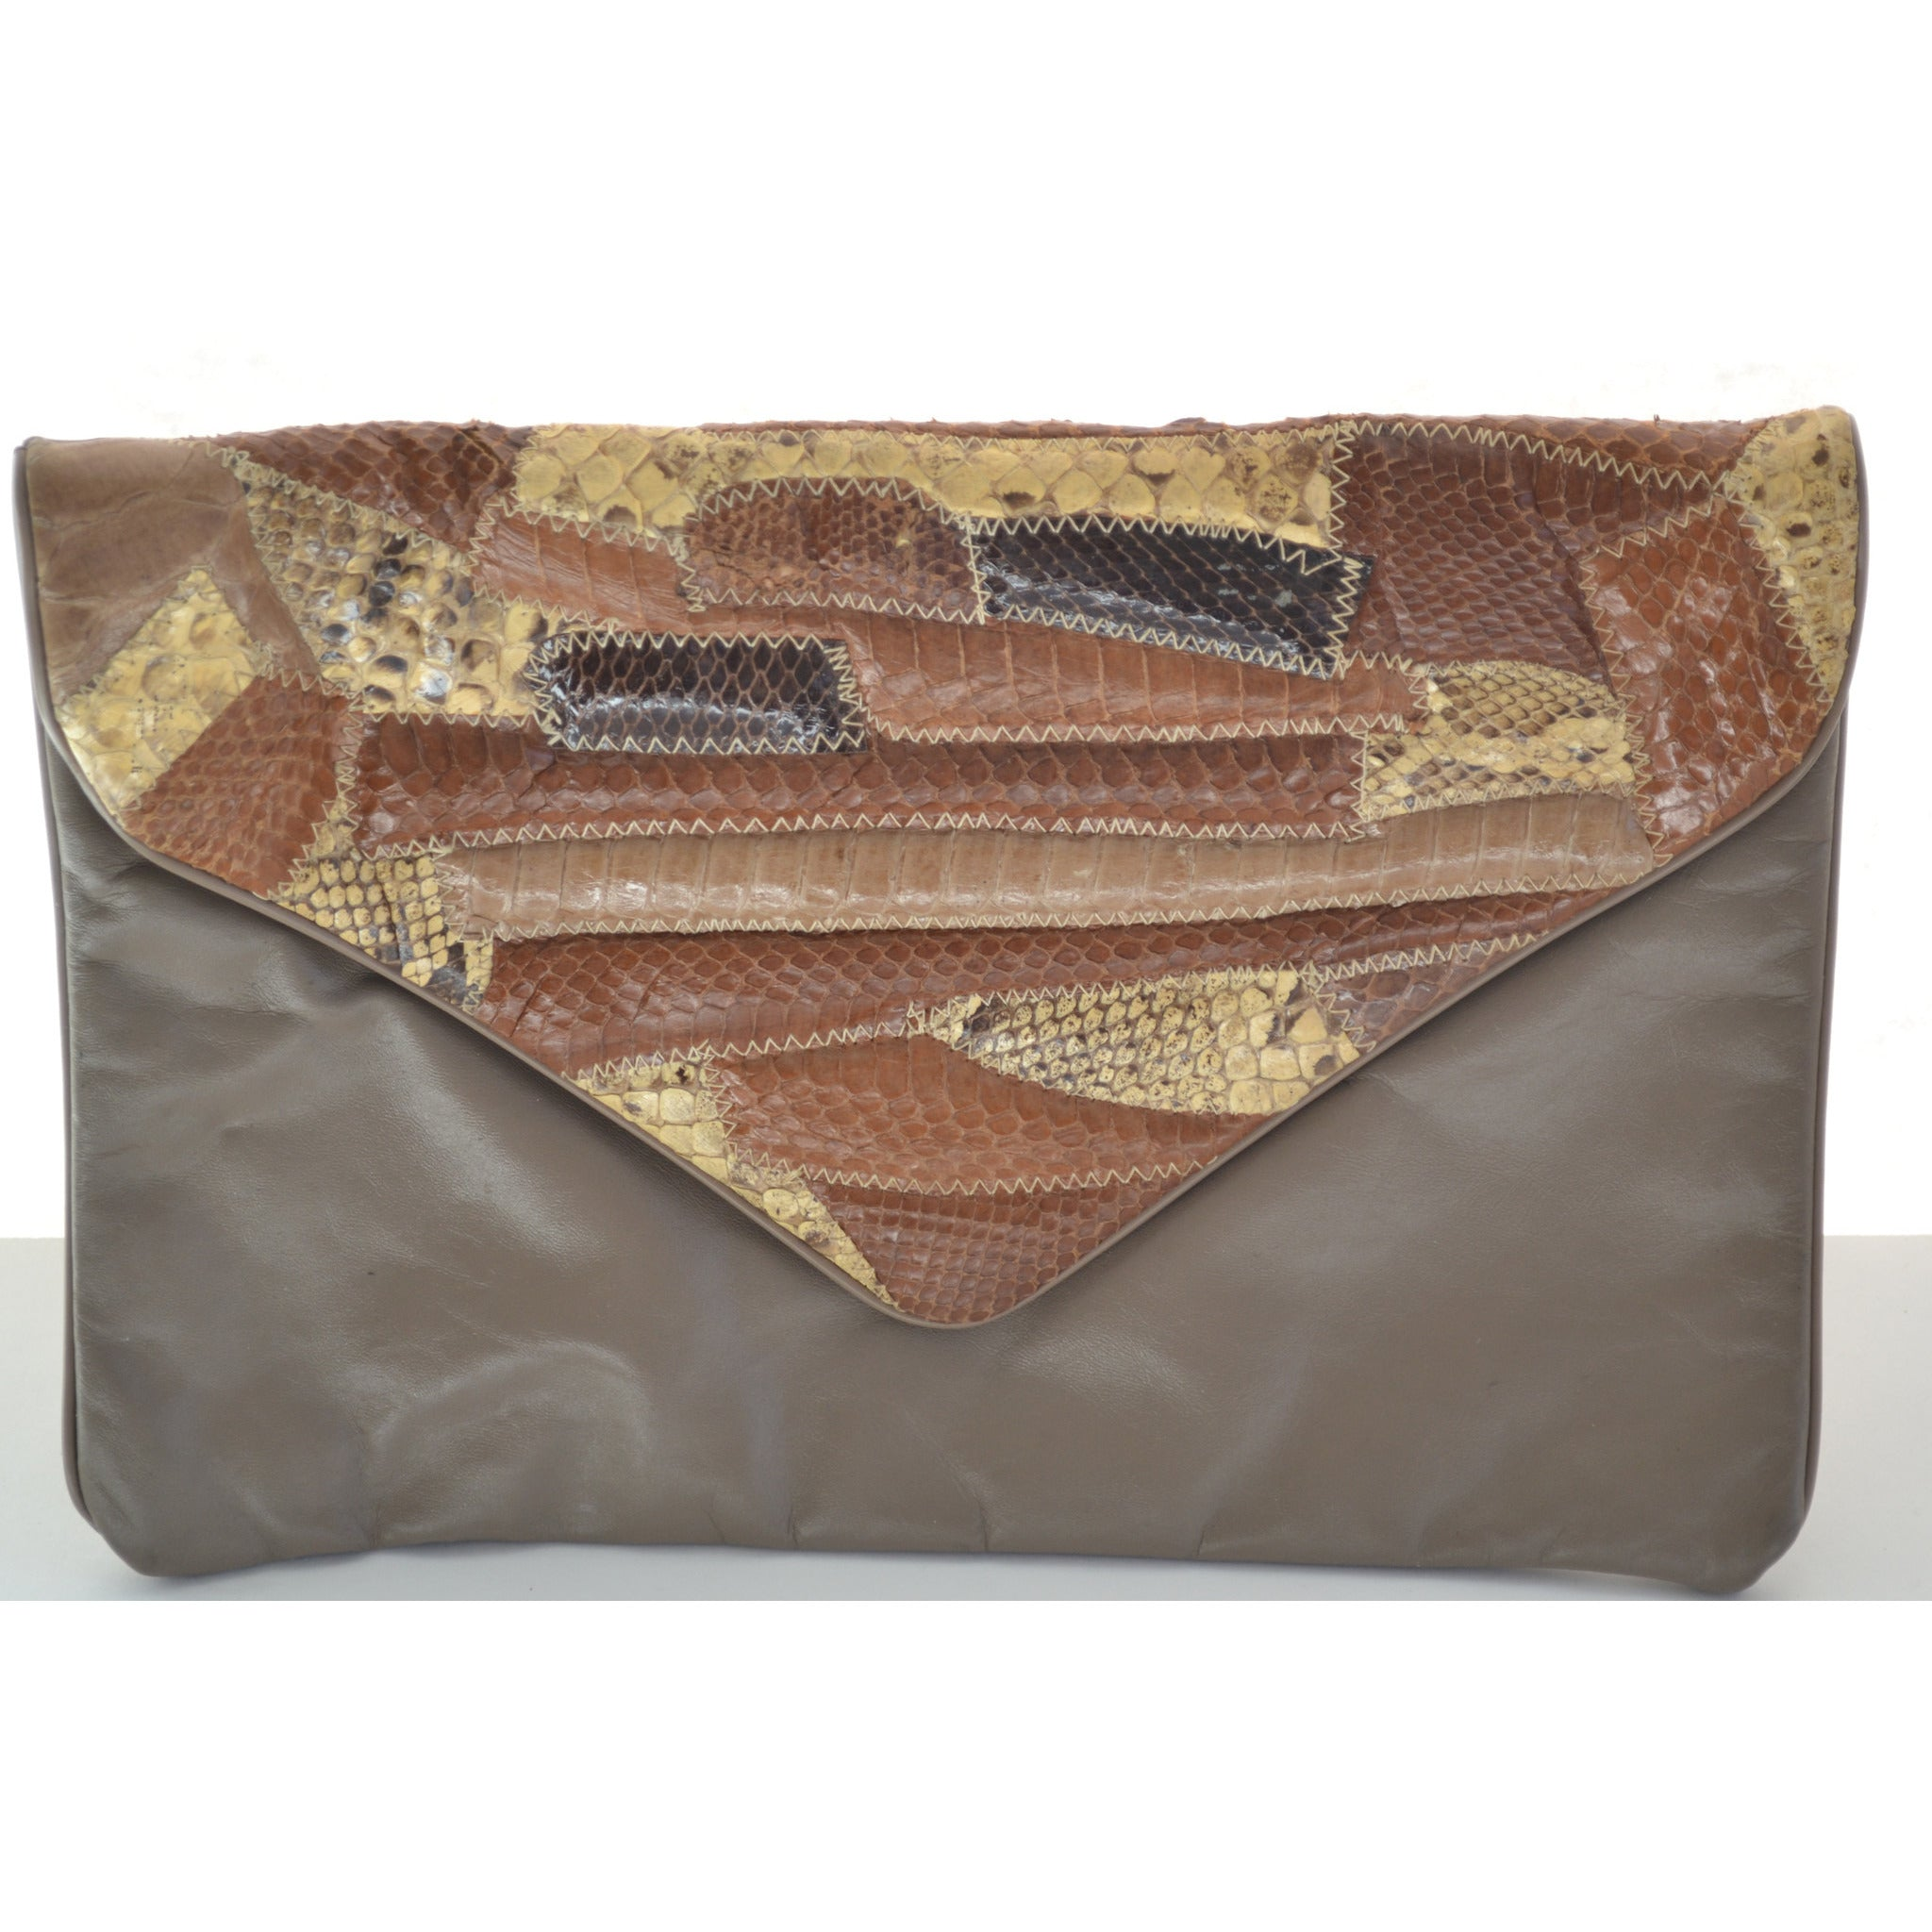 Vintage Brown Patched Reptile Leather Clutch Purse by Hala